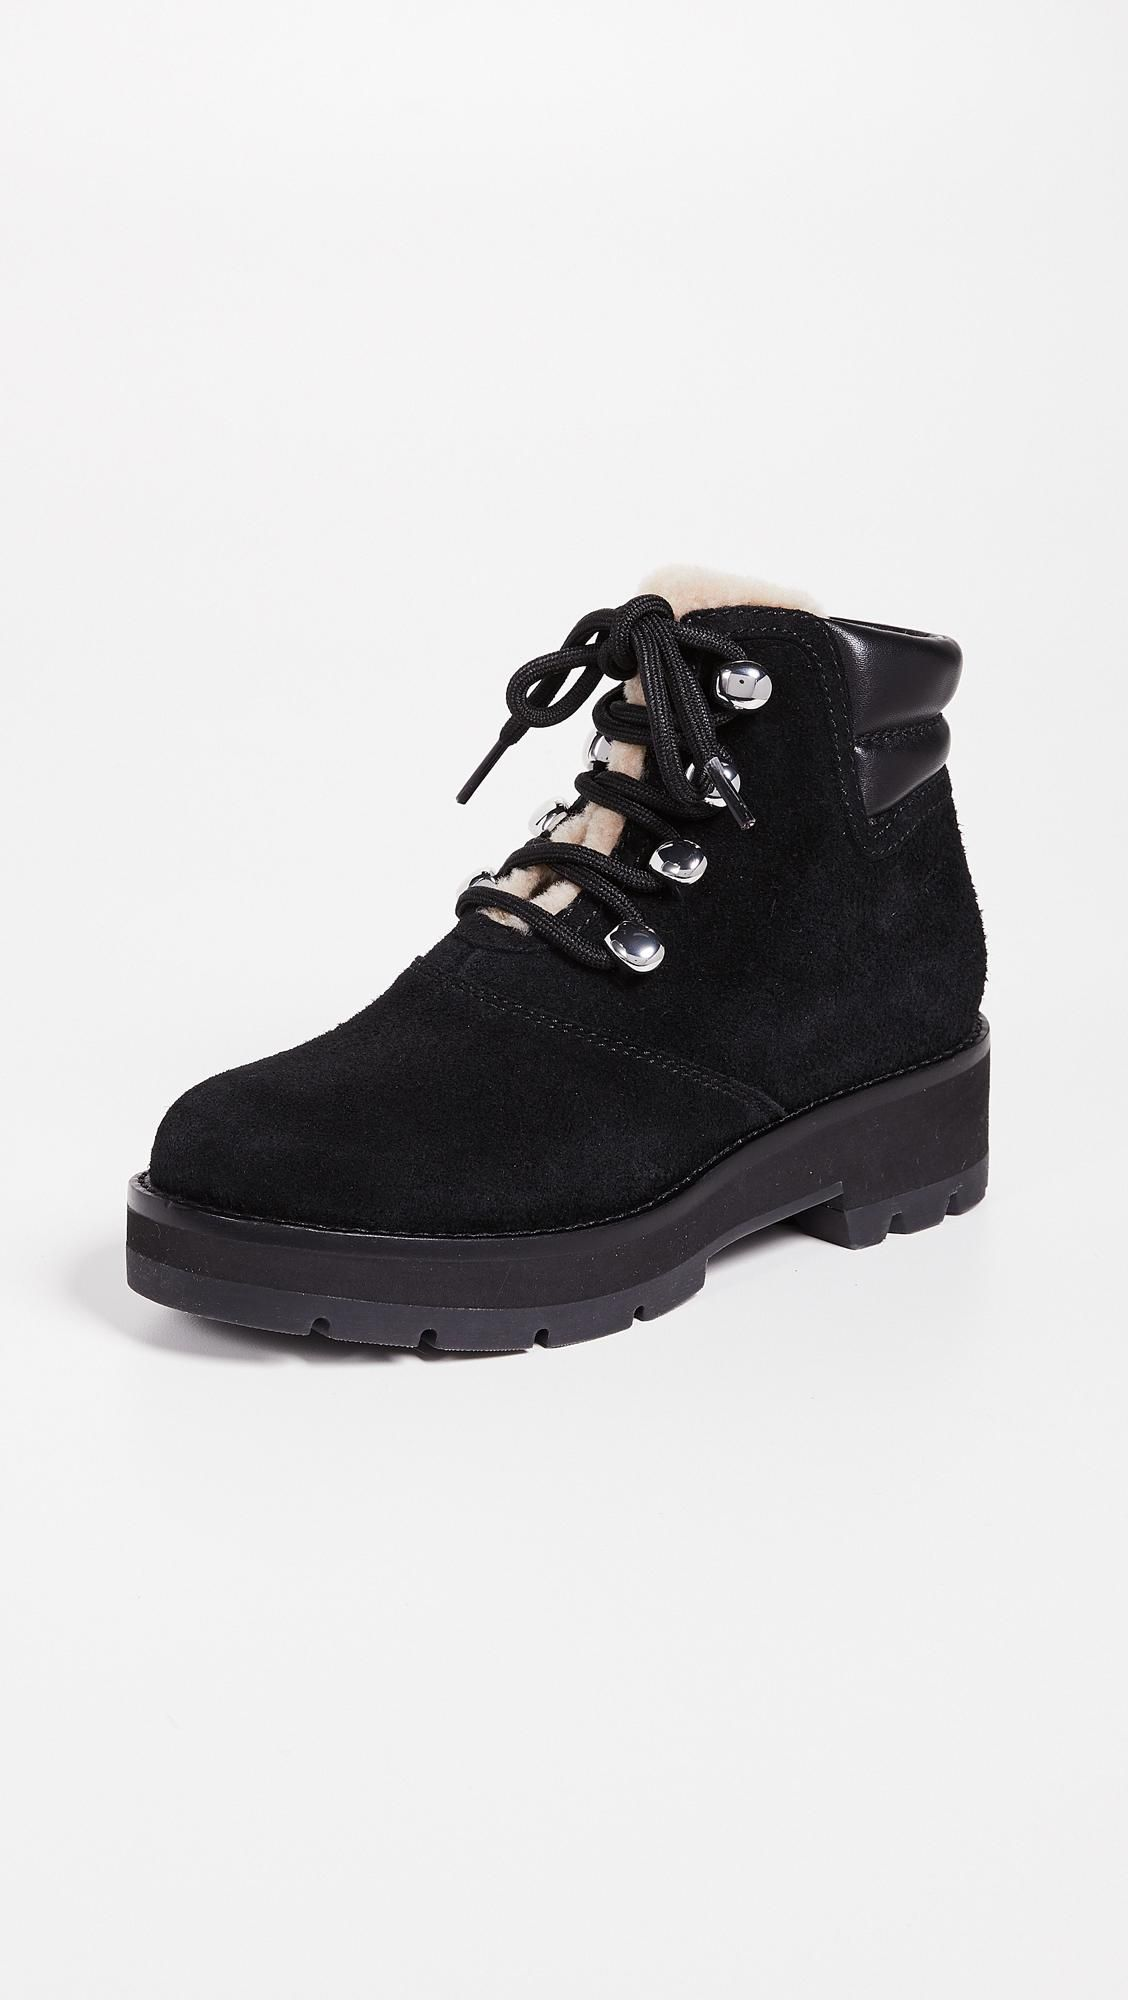 5922427f89971 3.1 Phillip Lim Dylan Hiking Boots  Hiking